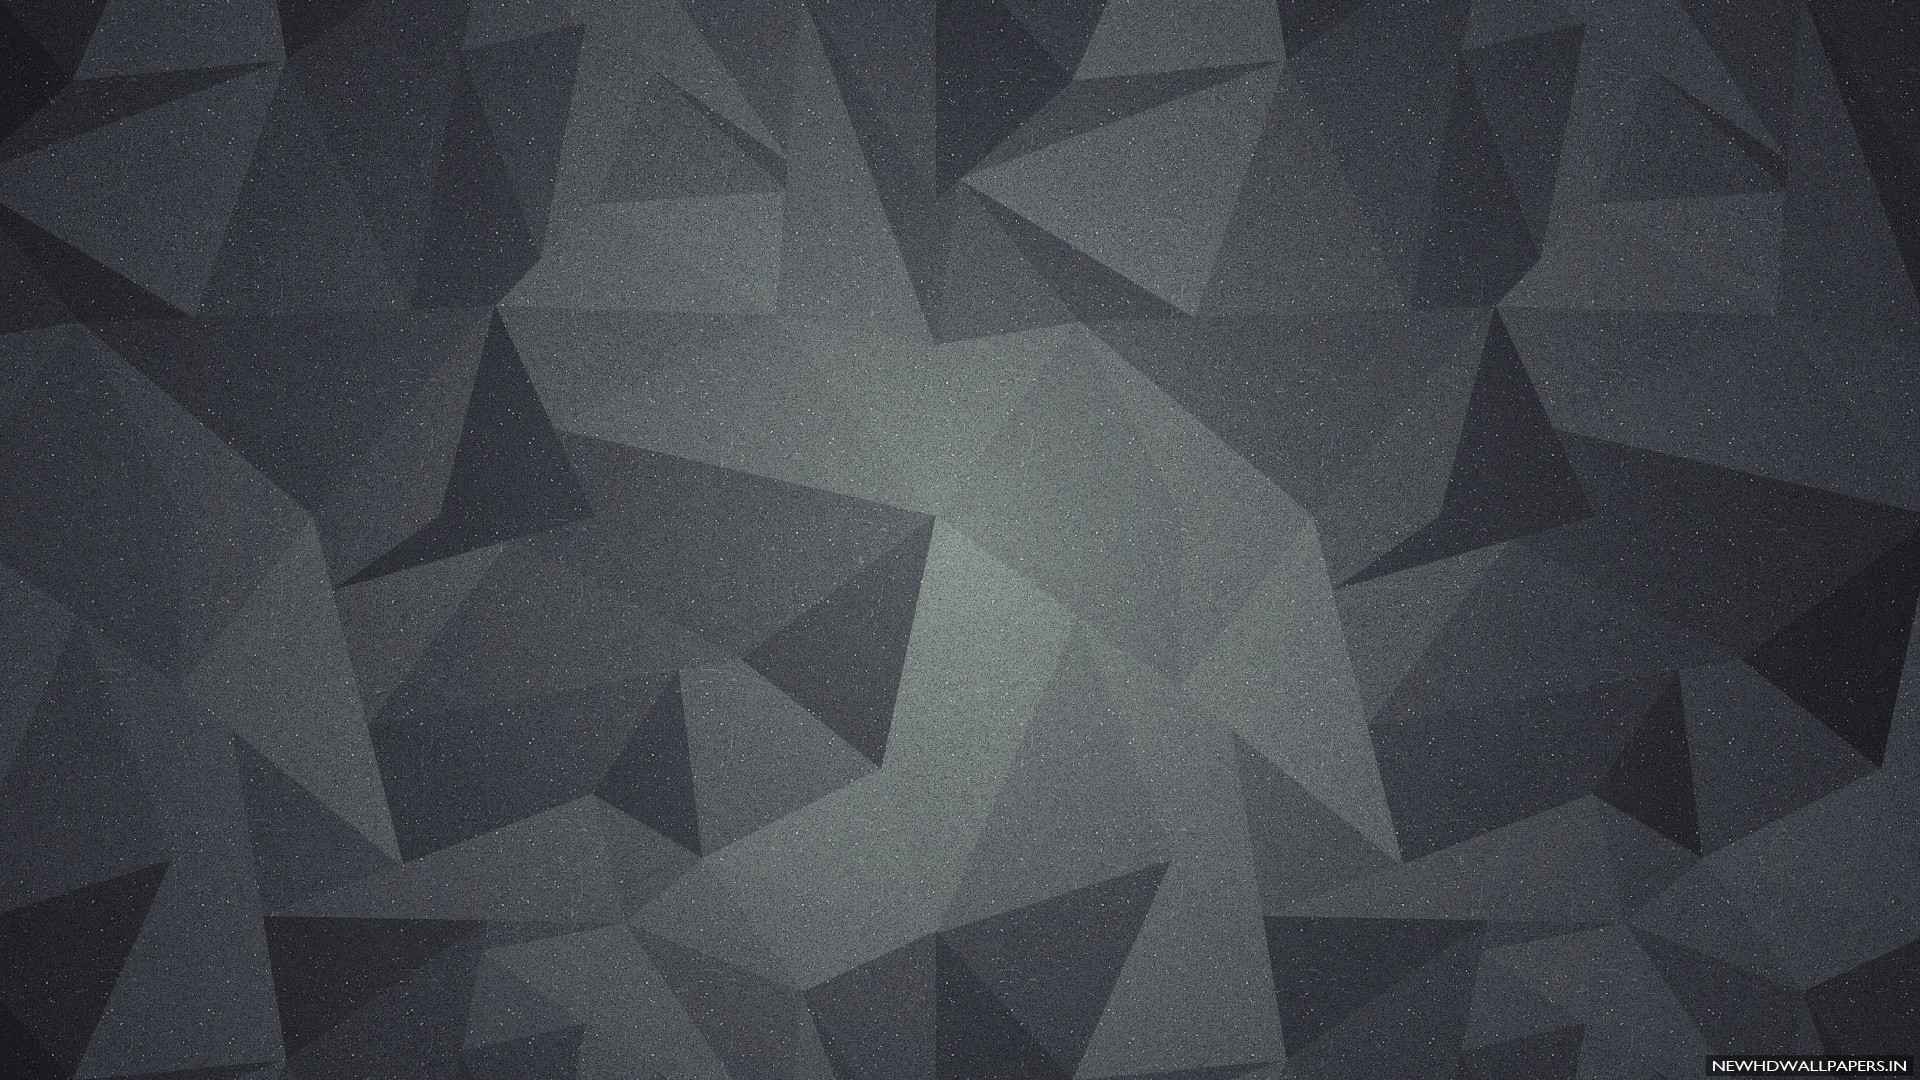 1920x1080 3D geometric abstract shapes dark background .